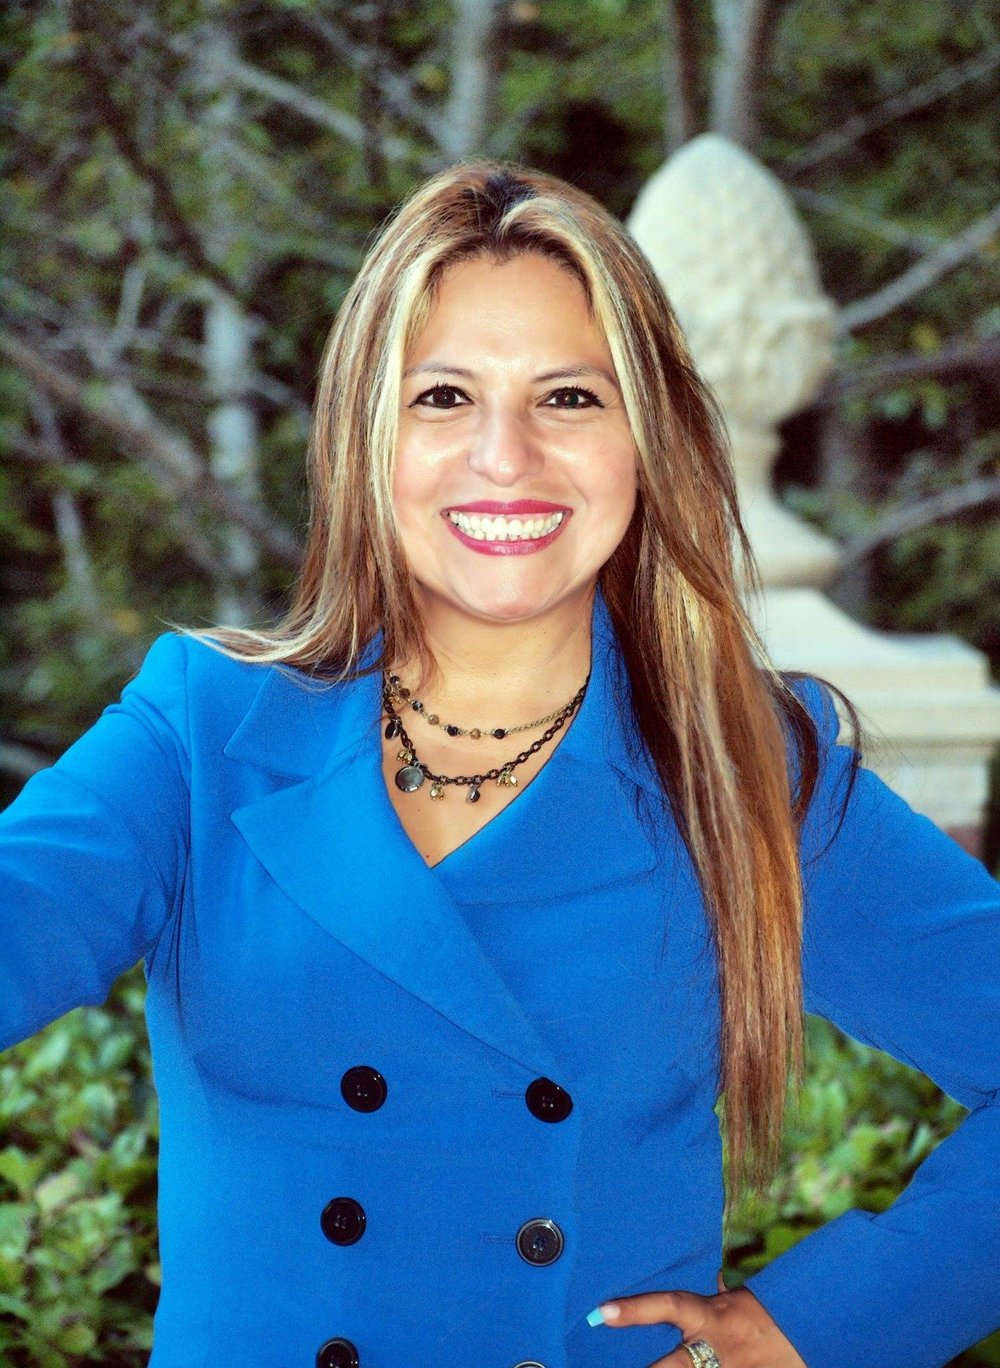 Elizabeth Guzman 31st District Candidate